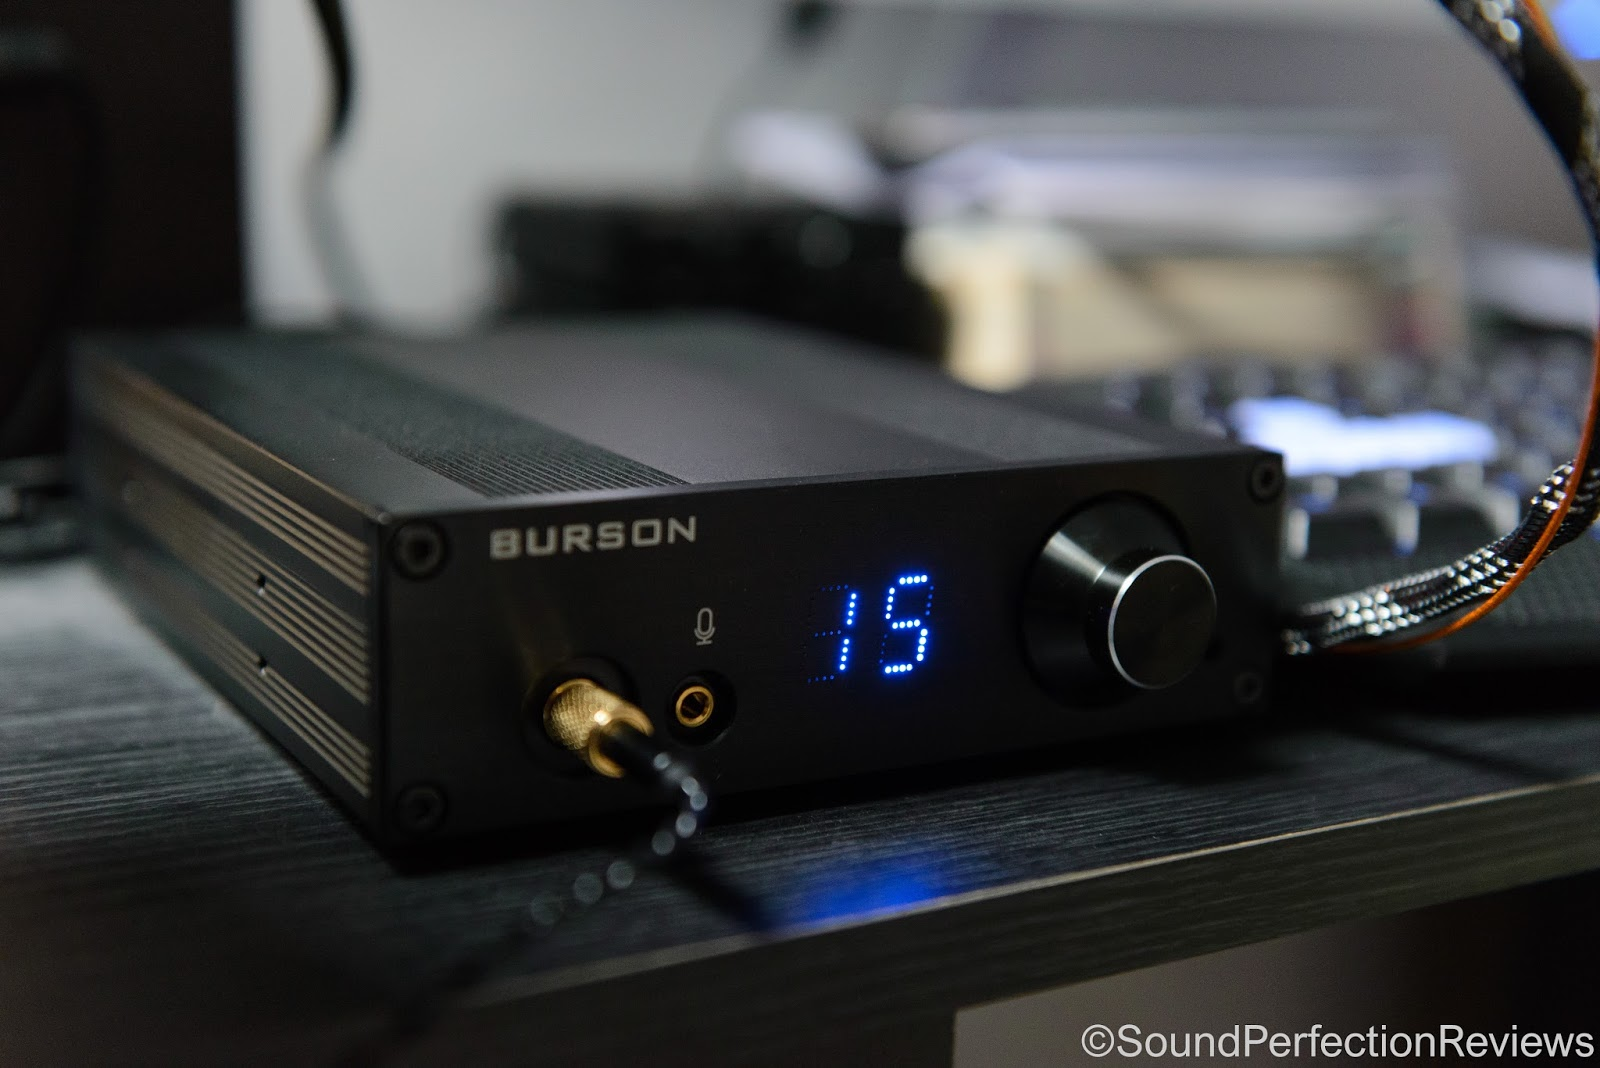 Review Burson Audio Play Class A Headphone Amp Dac Op Rollers Amplifier Circuit With Dream